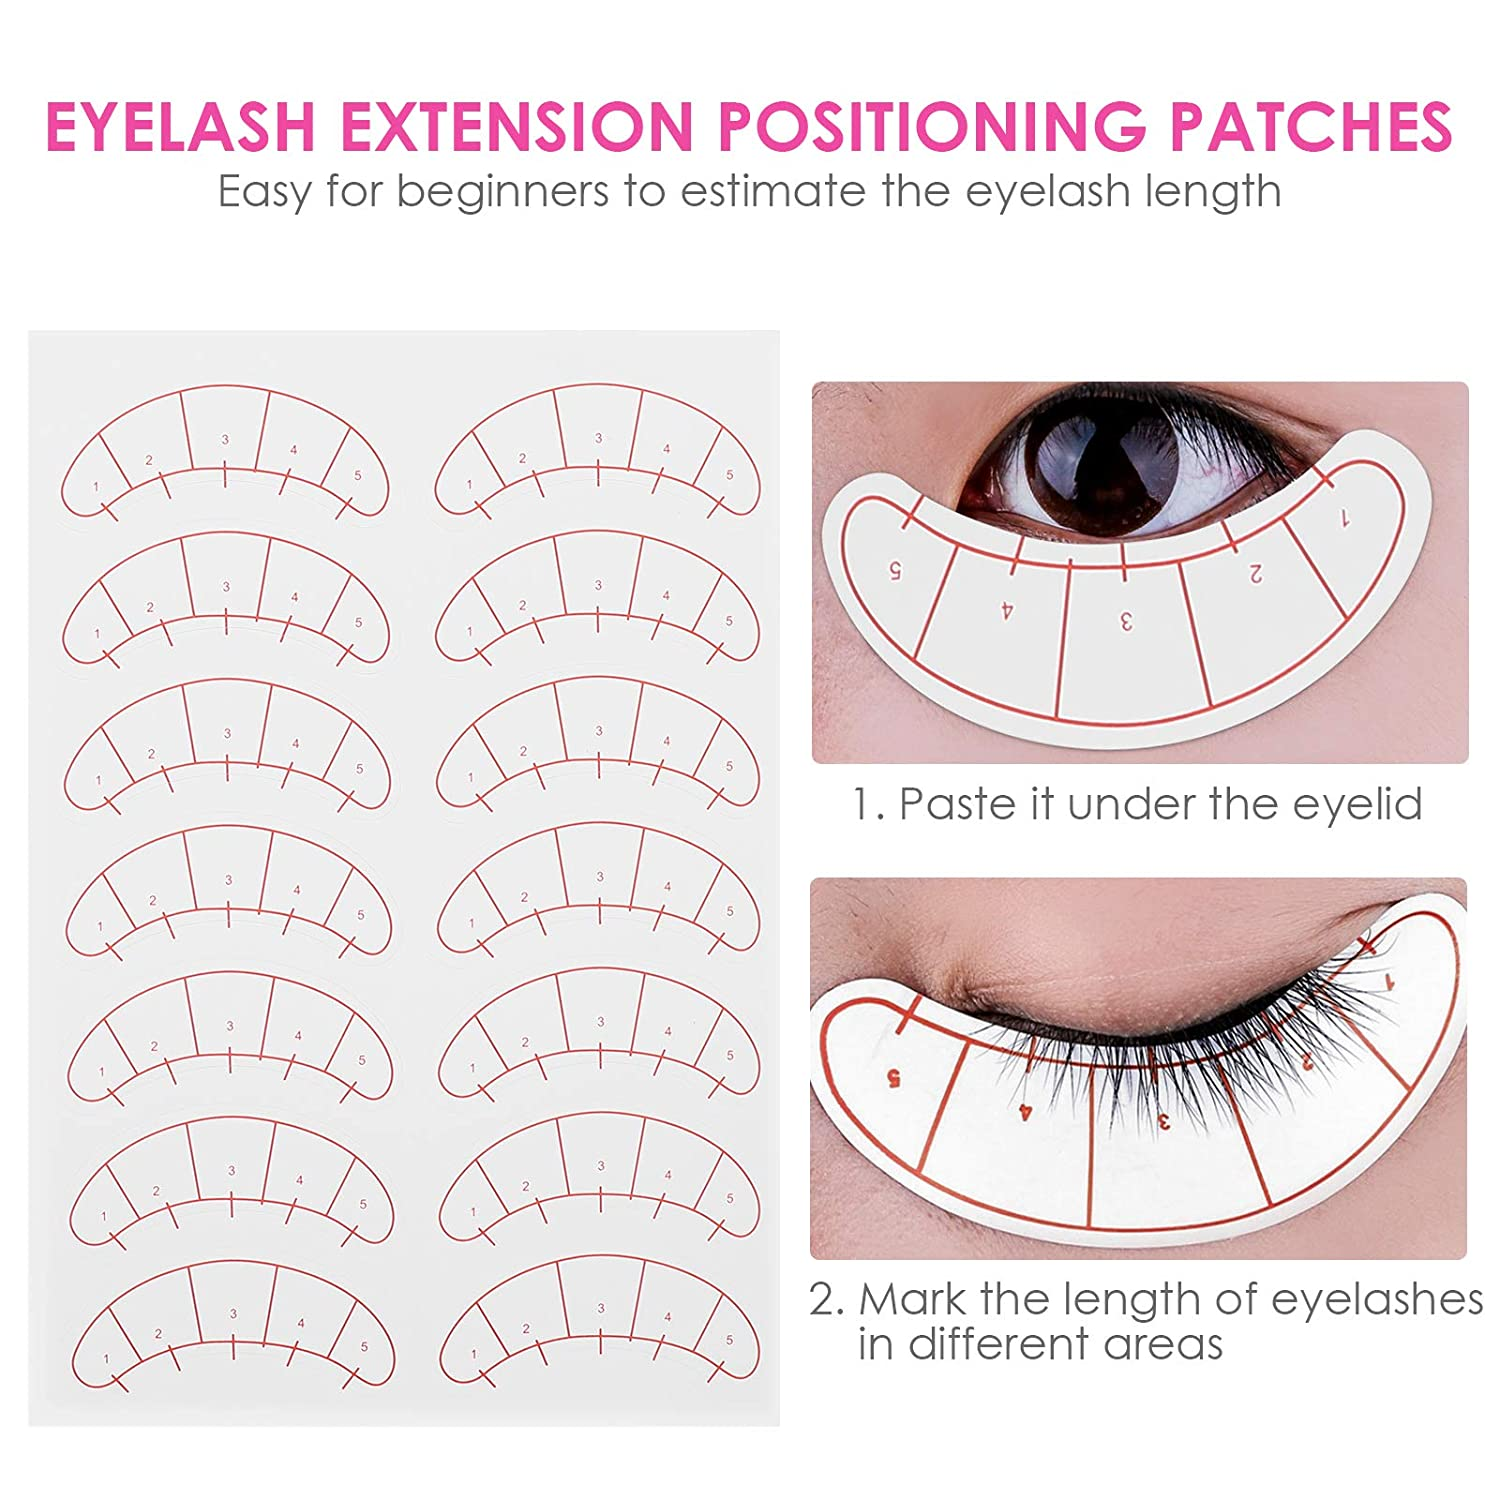 Eyelash Extension Paper Patches 3D Eyelash Under Eye Pads 5-point Positioning Paper Tips Sticker 10 Sheets